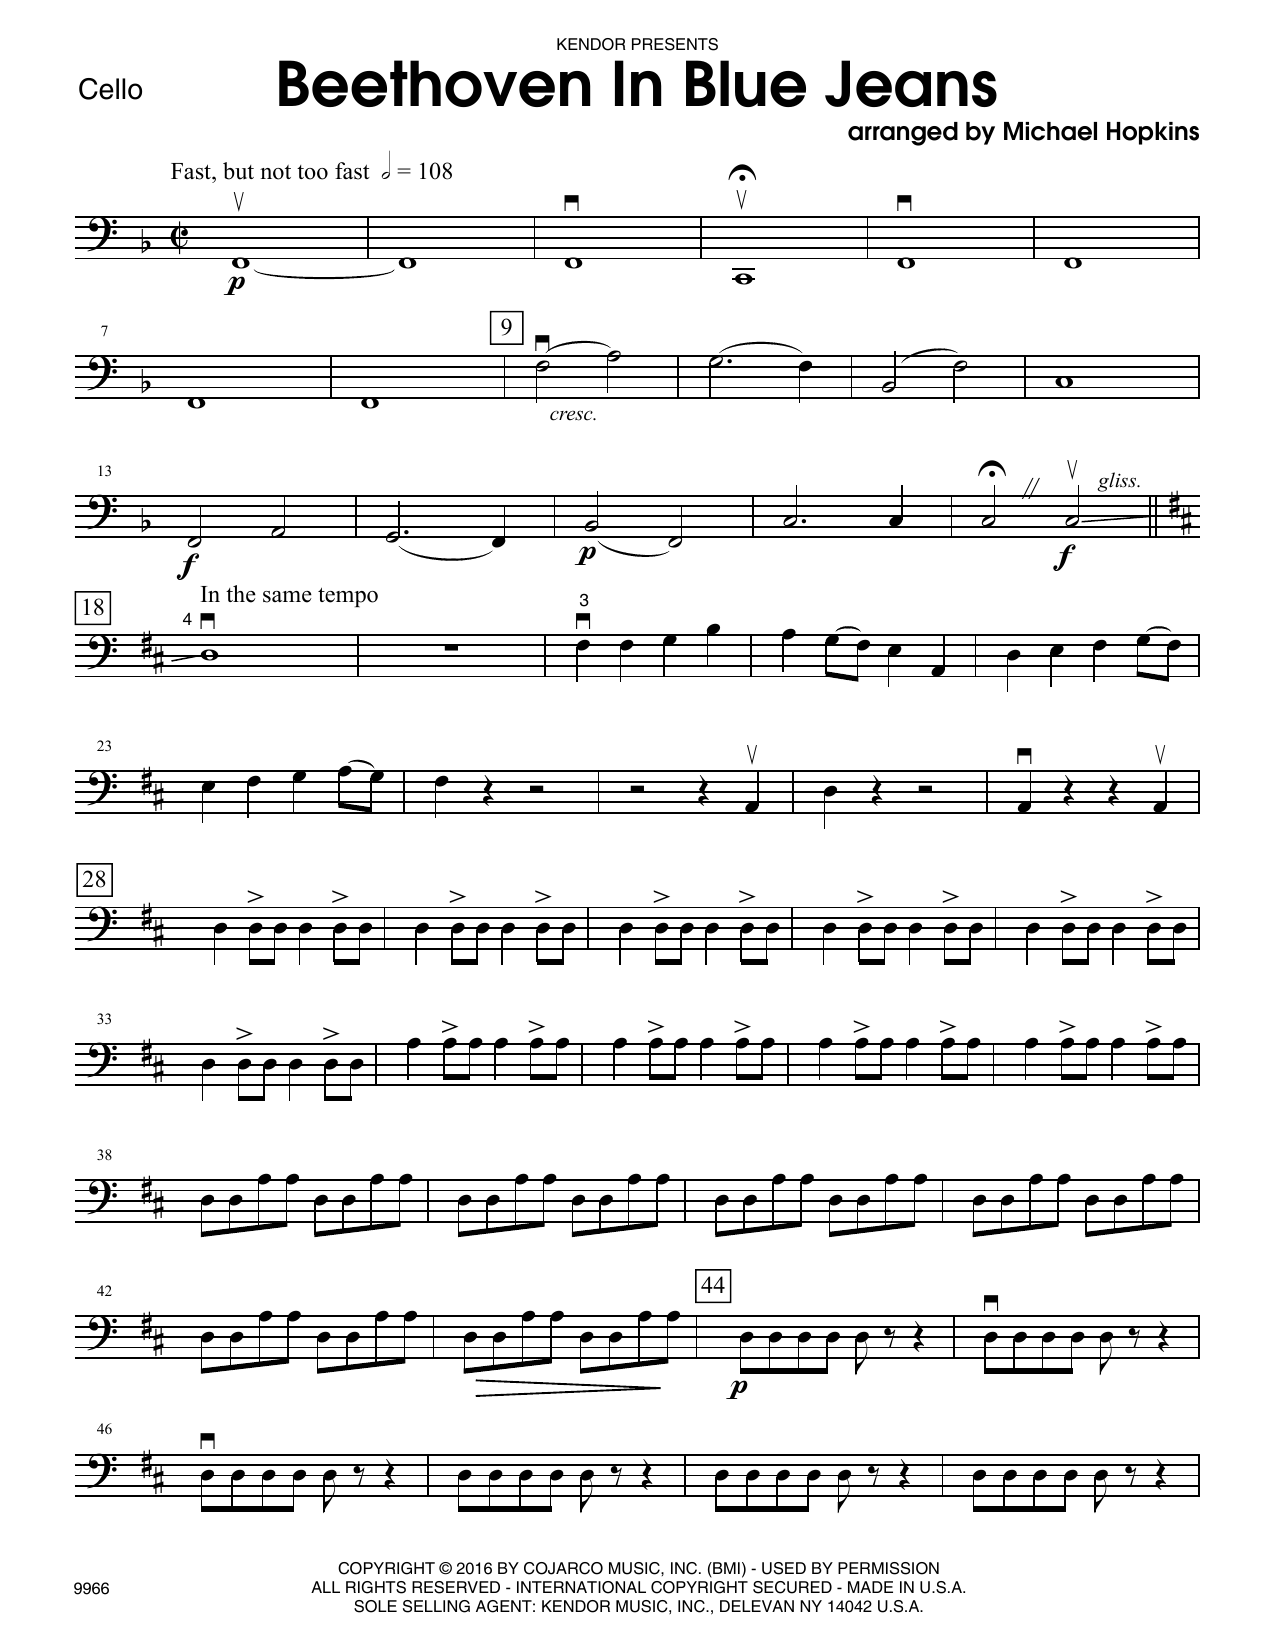 Beethoven In Blue Jeans - Cello Sheet Music